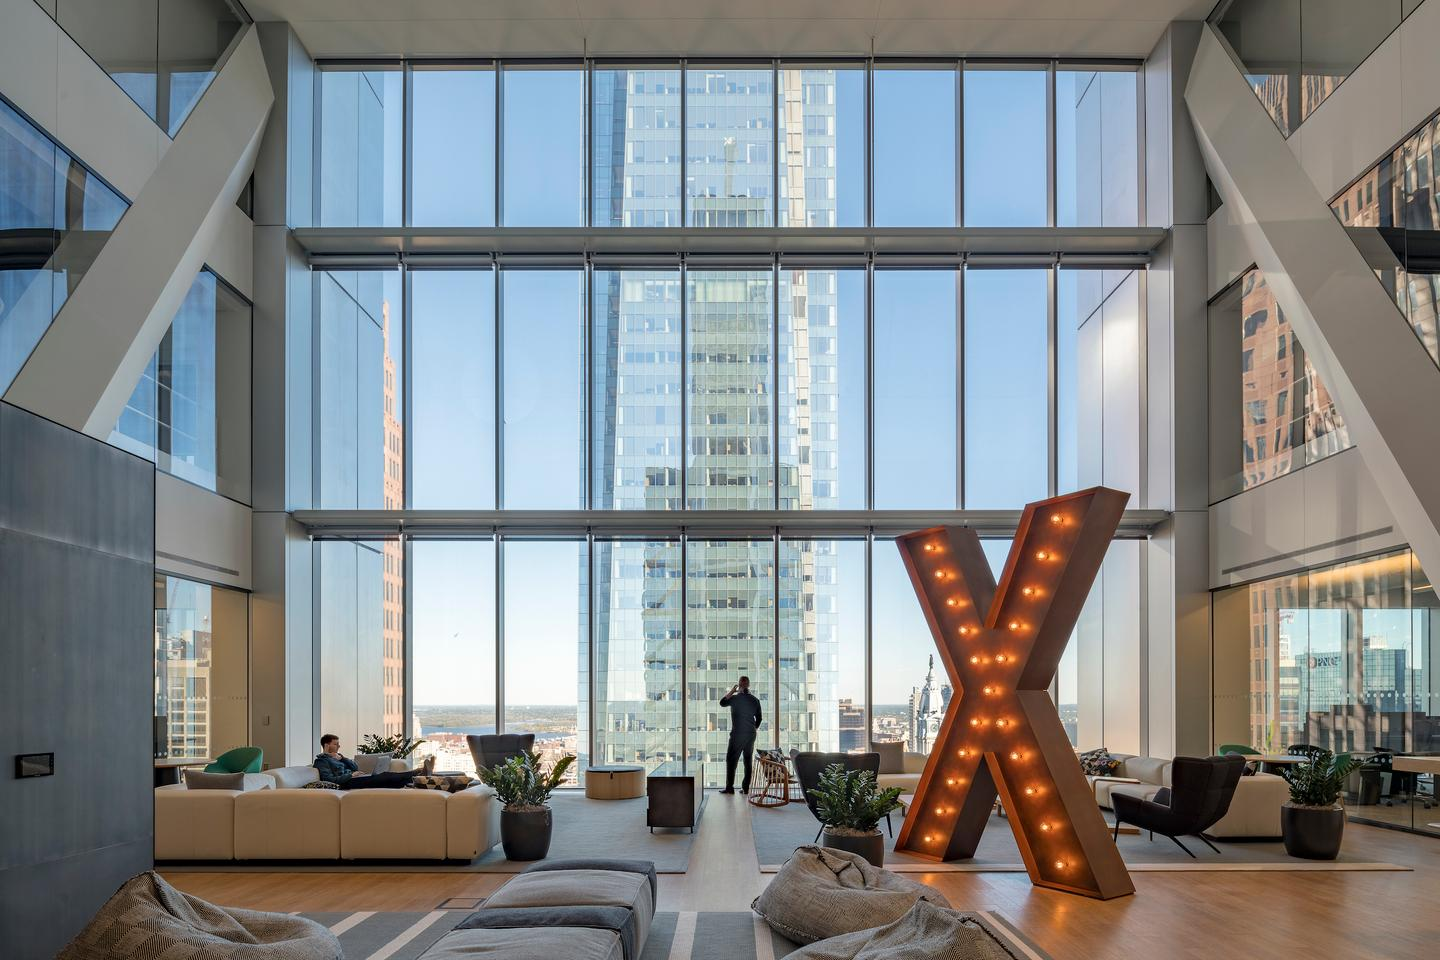 The Comcast Technology Center focuses on maximizing natural light inside